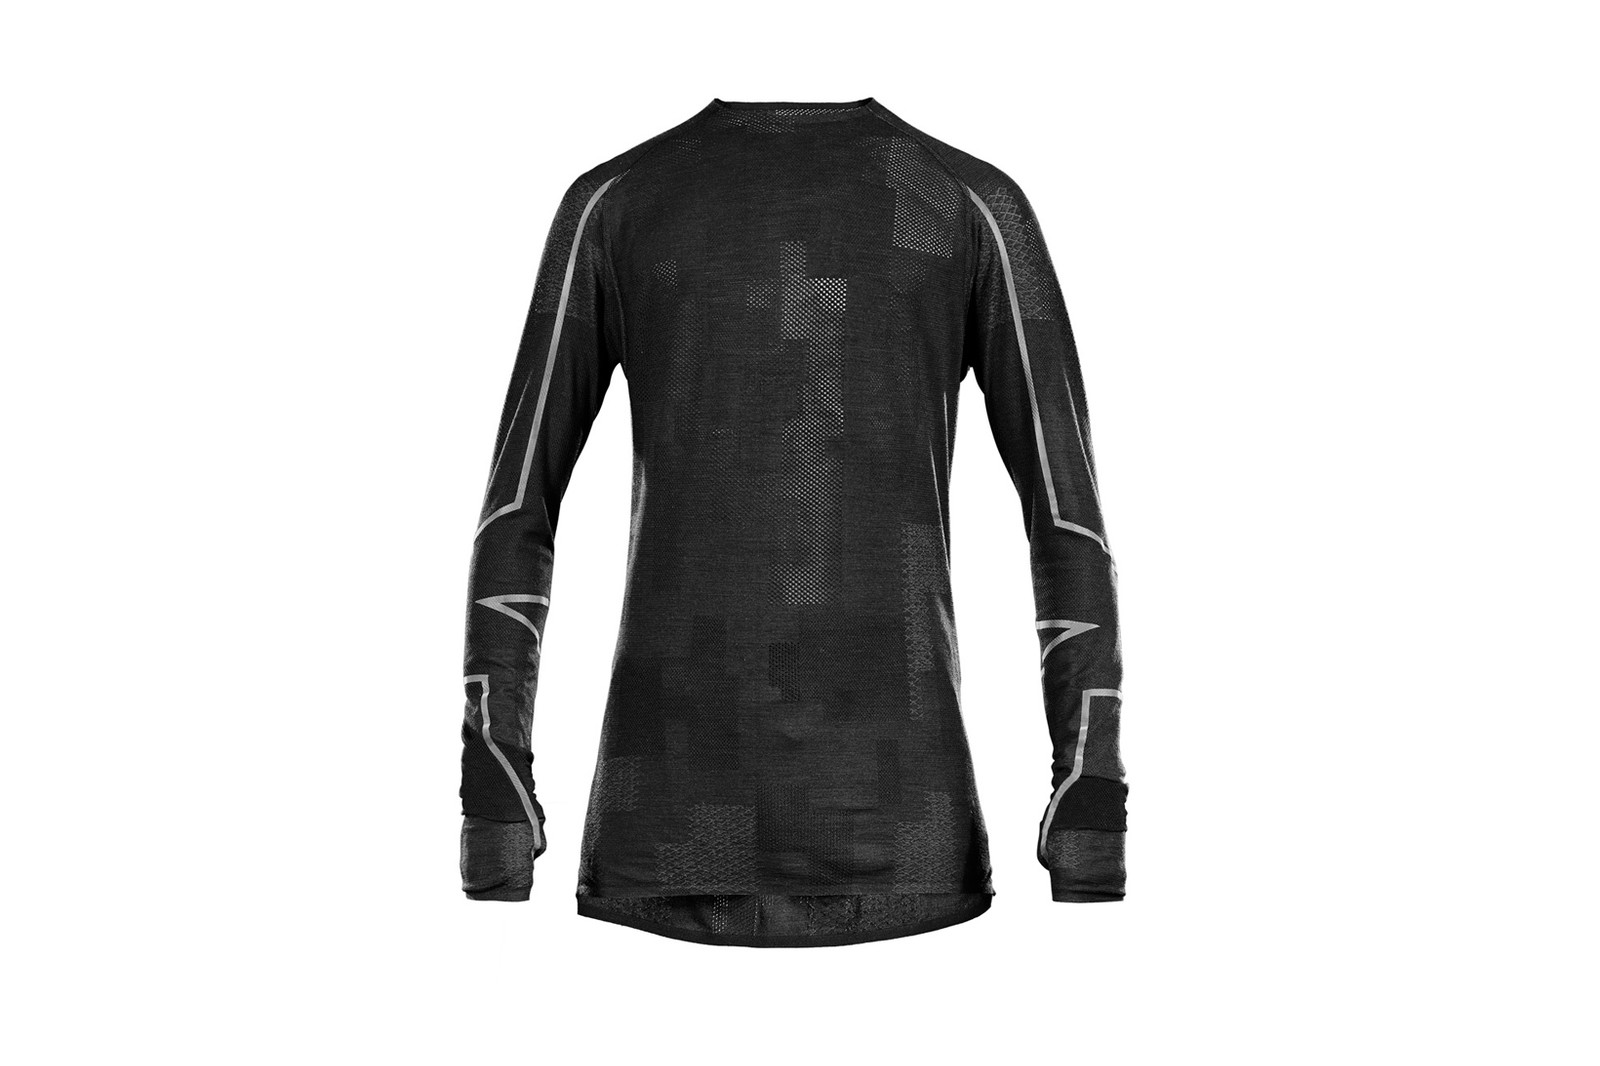 Y-3 SPORT 2017 Spring Summer Collection Approach Merino Rain Zip Jacket Tee Black 3M